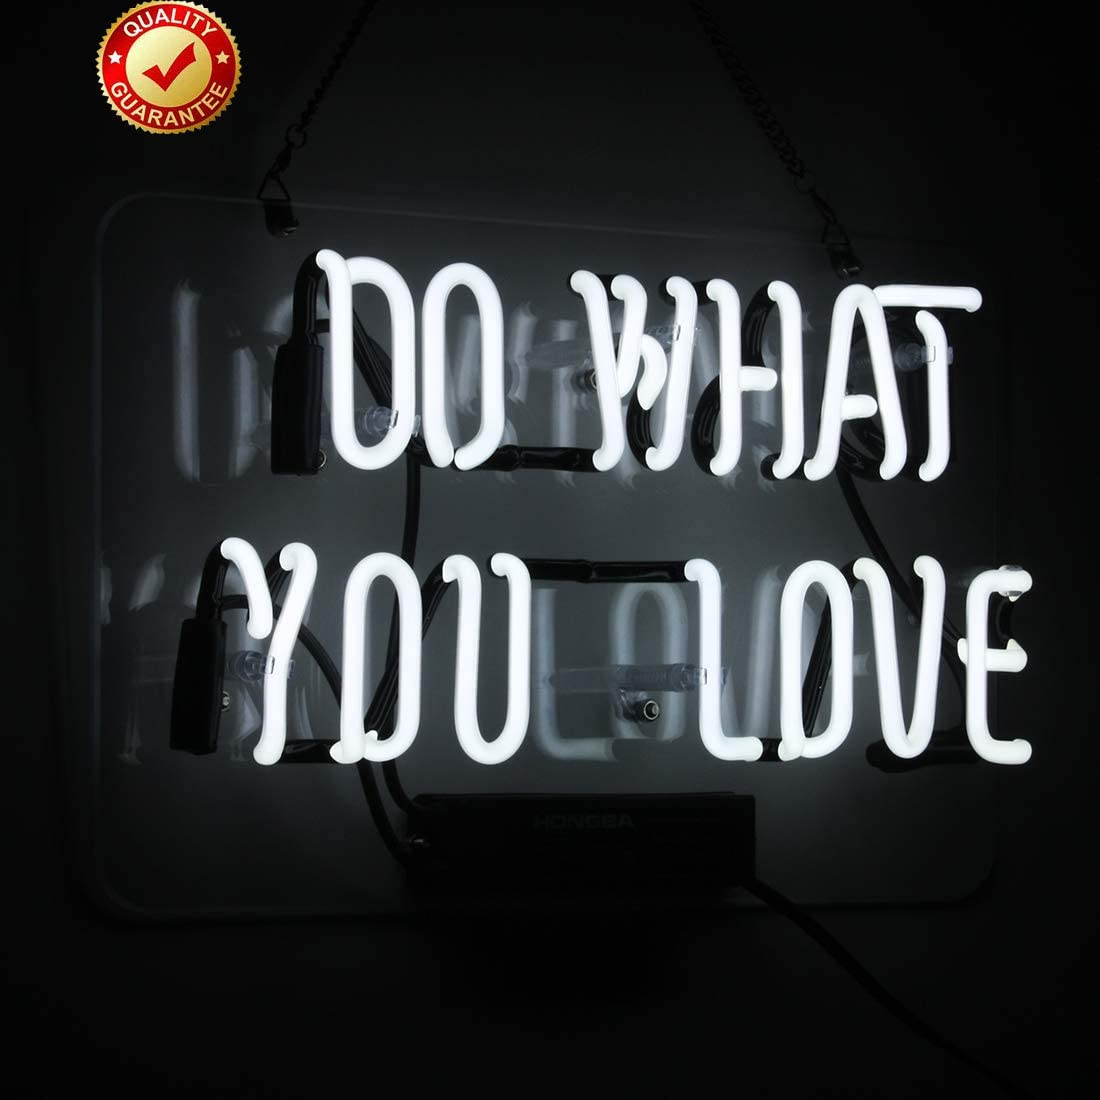 Neon Lights Do What You Love Neon Sign White Office Bar Sign 14 x 9 Inch Neon Light Sign for Bedroom Living Room Christmas Party Decor Ultra Bright Neon Night Light